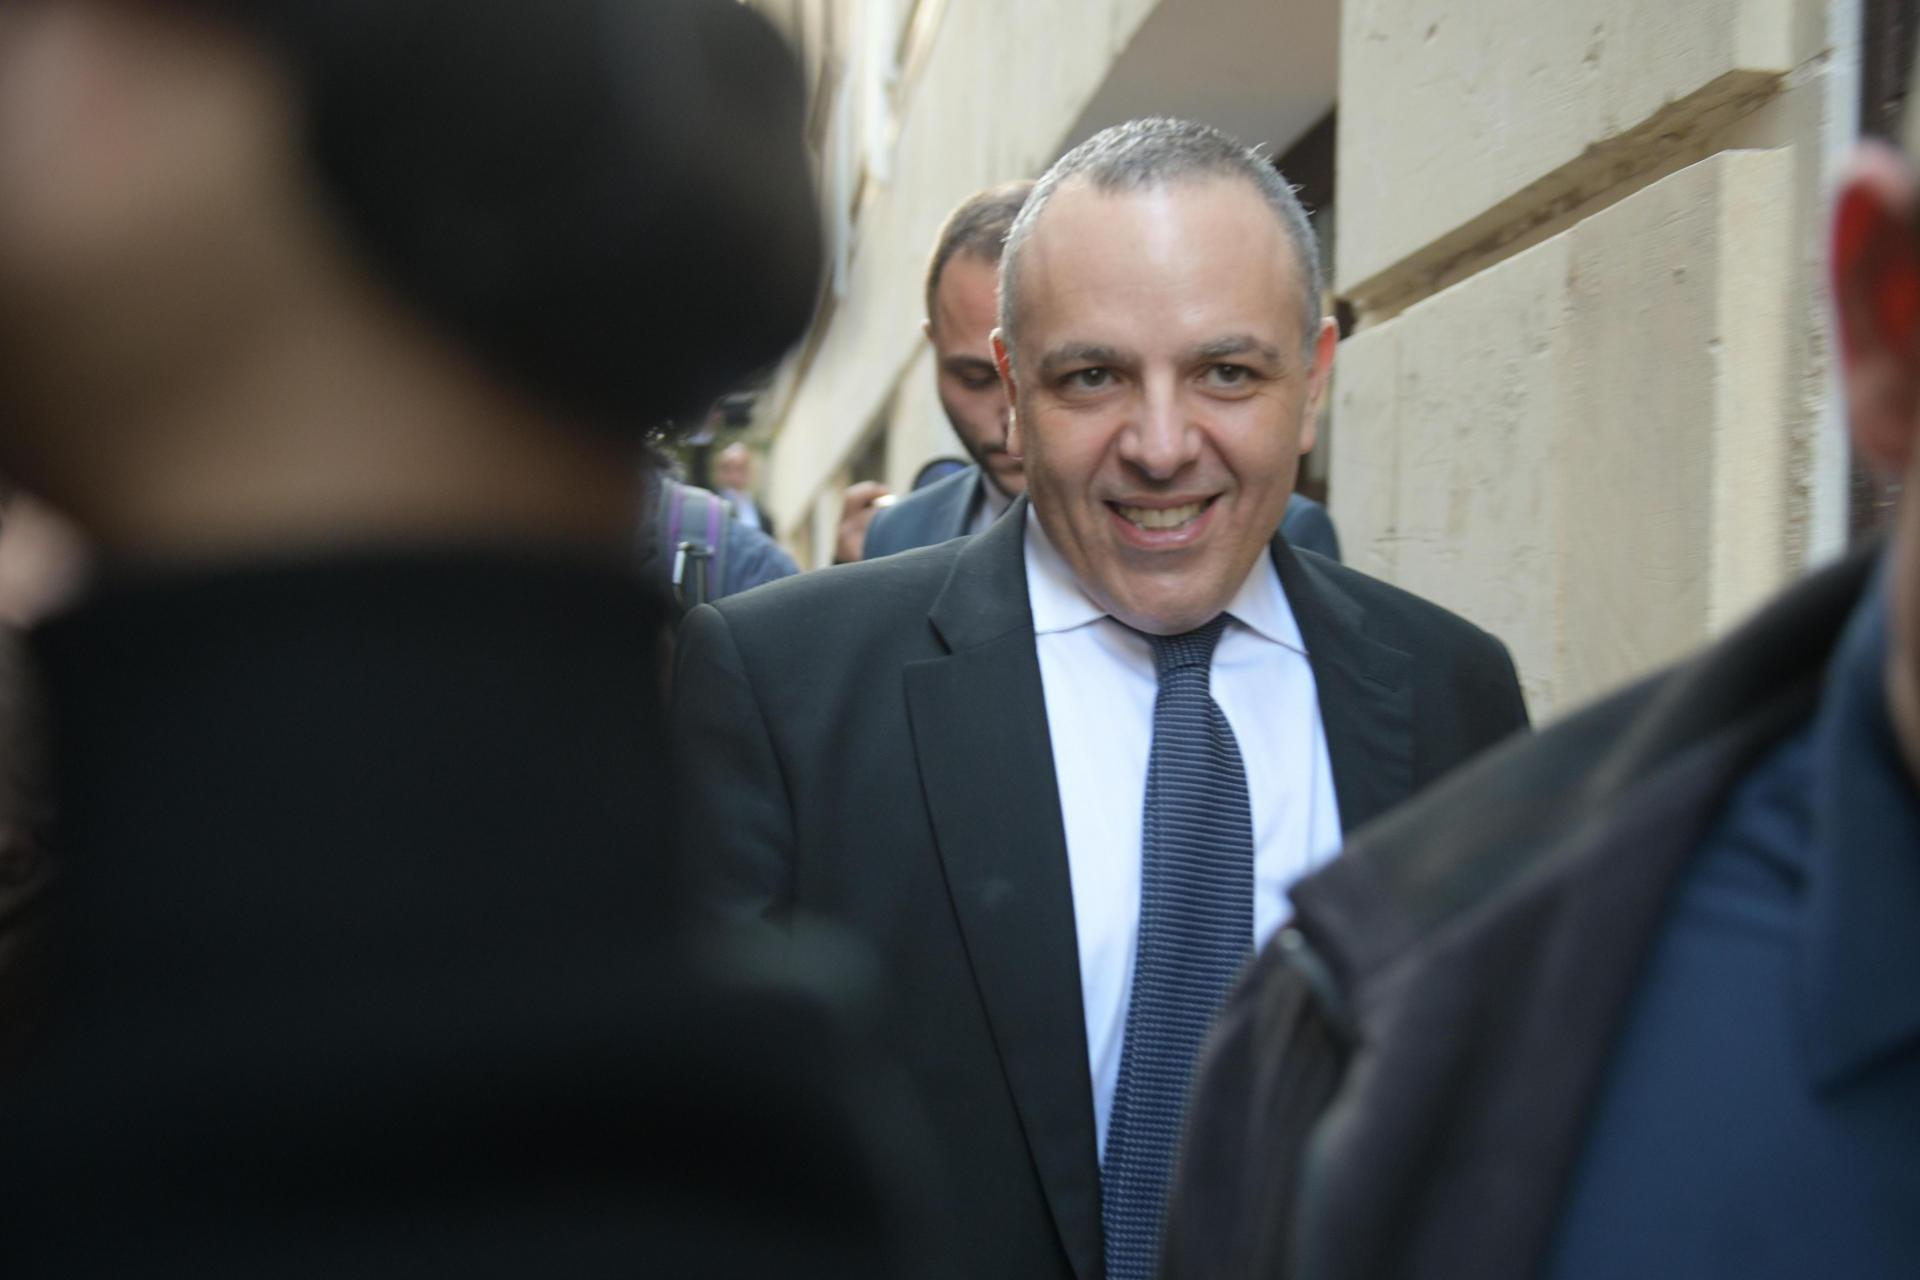 Keith Schembri has admitted spending 24 minutes on the phone to murder suspect Yorgen Fenech before he attempted to leave Malta, sparking his arrest in November